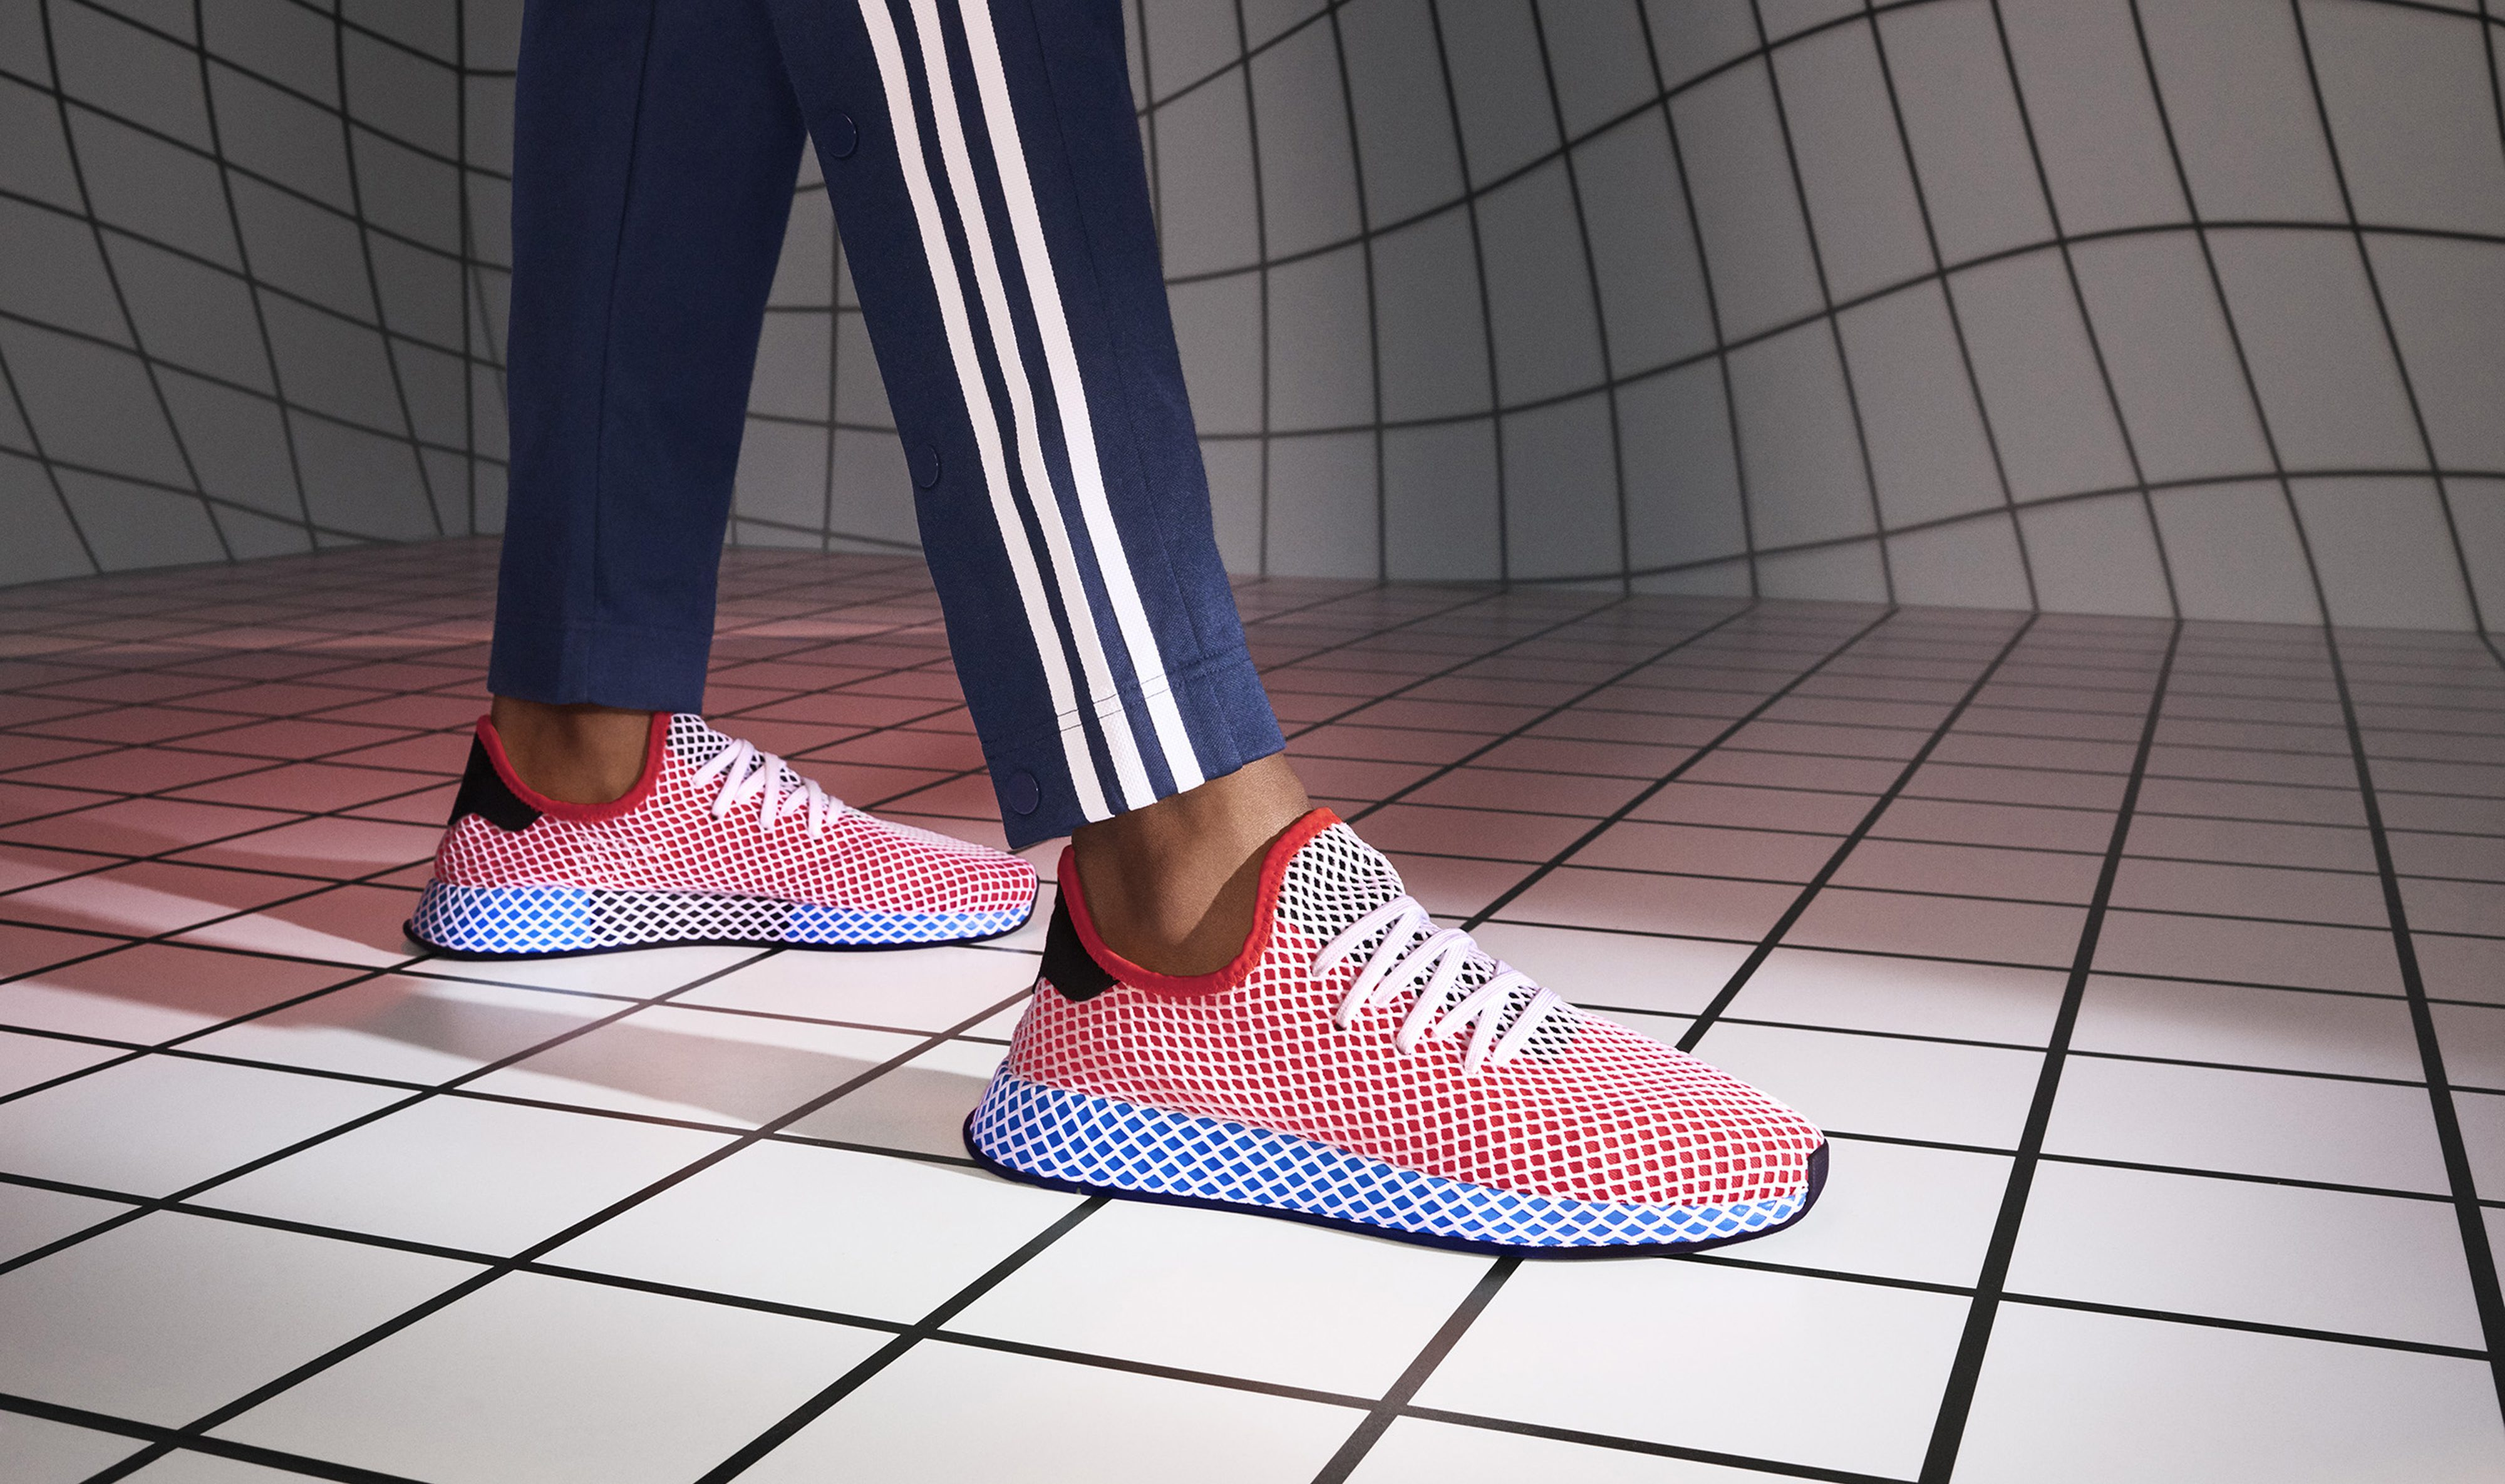 c4800a7b41a Instagram sneaker style: Adidas Deerupt was designed for the